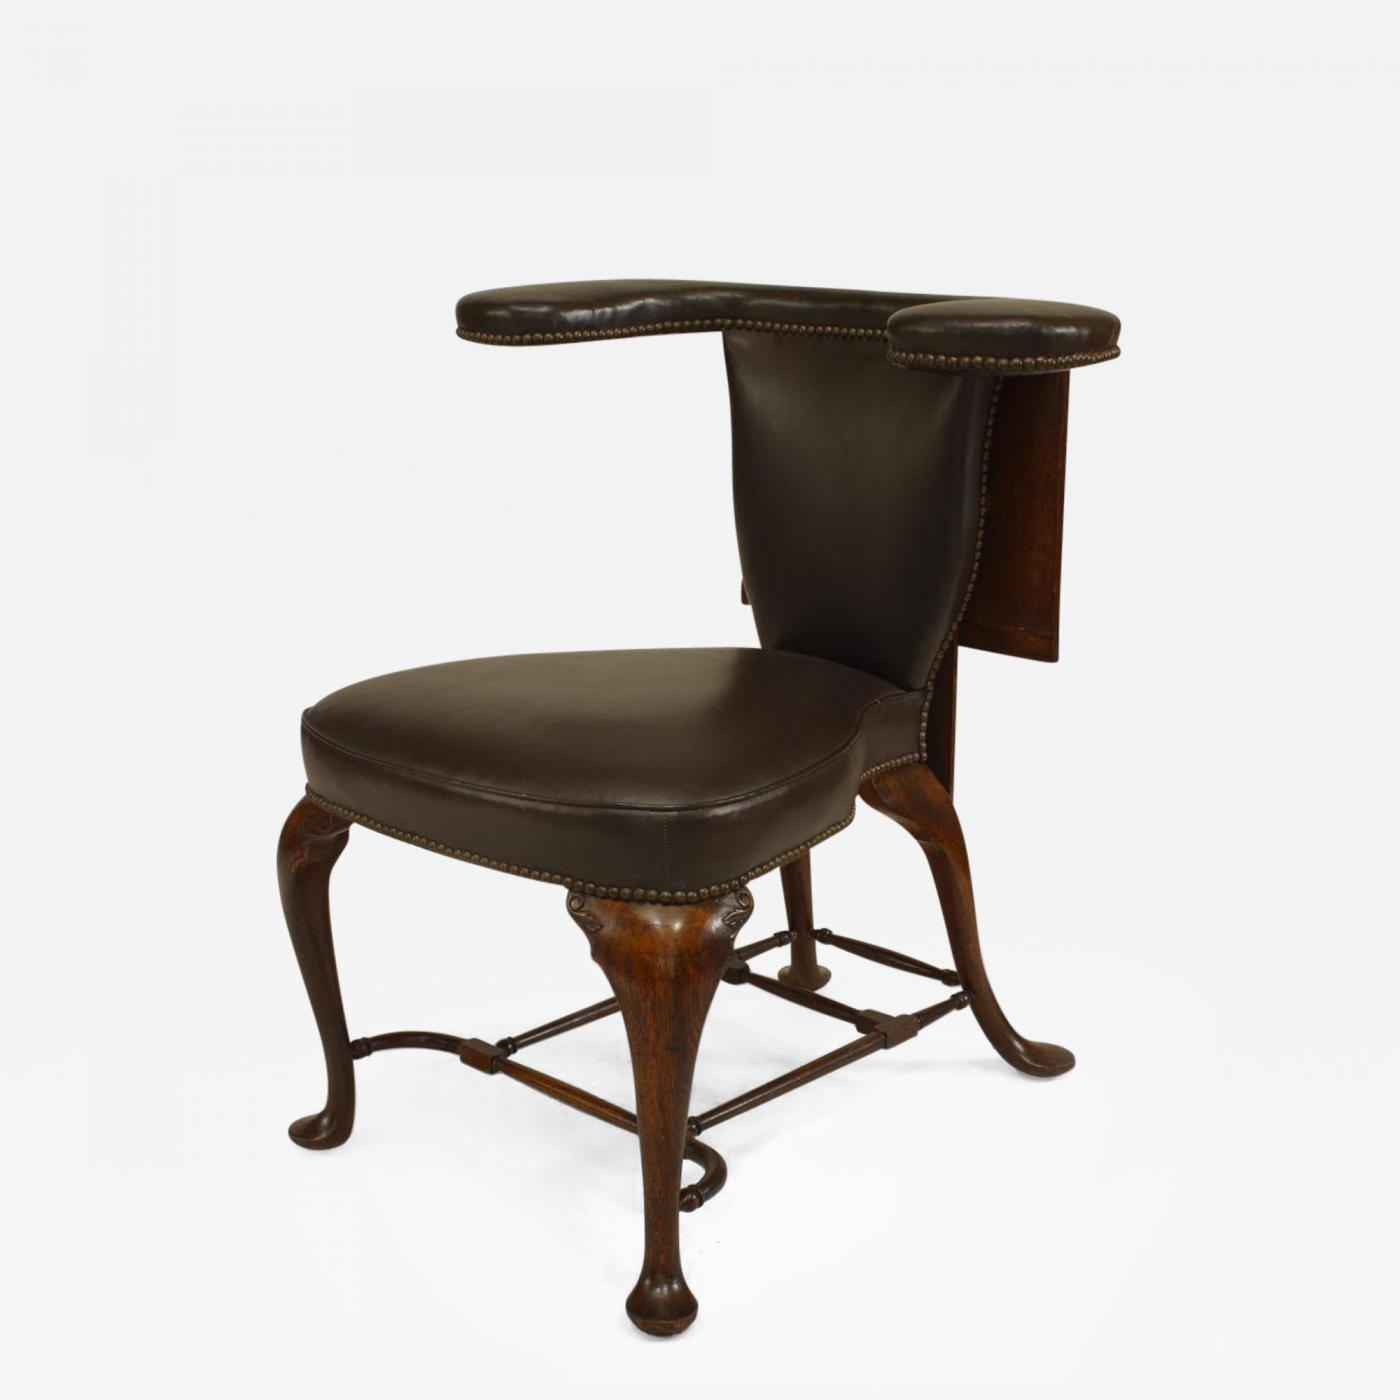 ... Upholstered Reading Chair. More Images Want More Images?